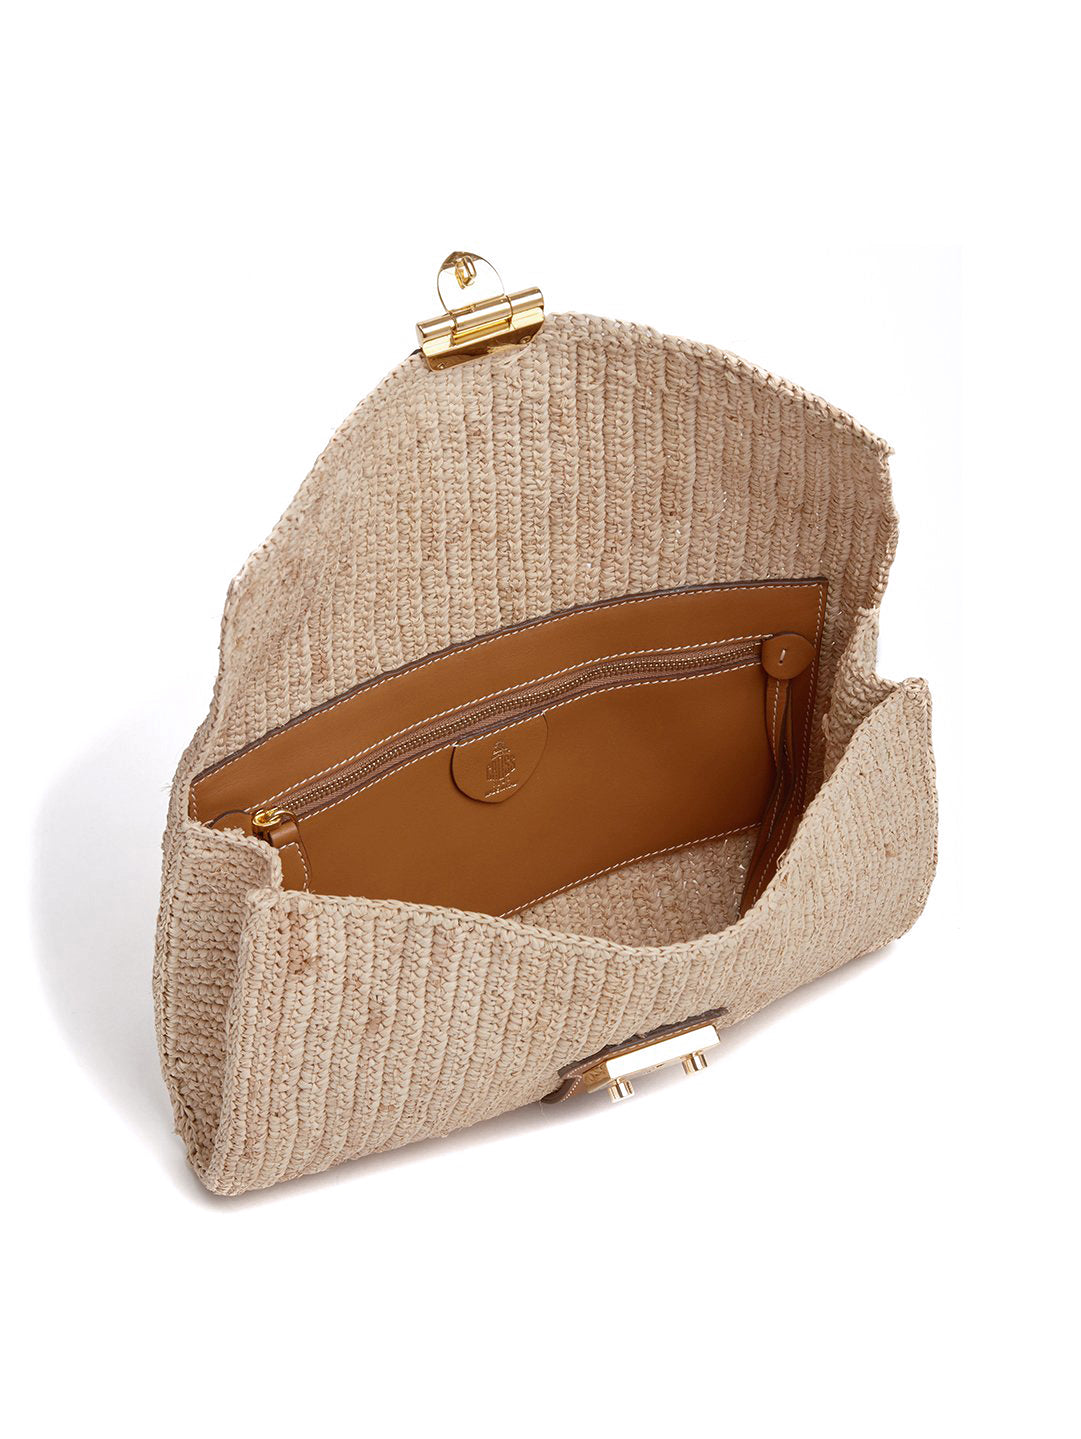 Mark Cross Sylvette Raffia & Leather Clutch Smooth Calf Luggage / Natural Raffia Interior